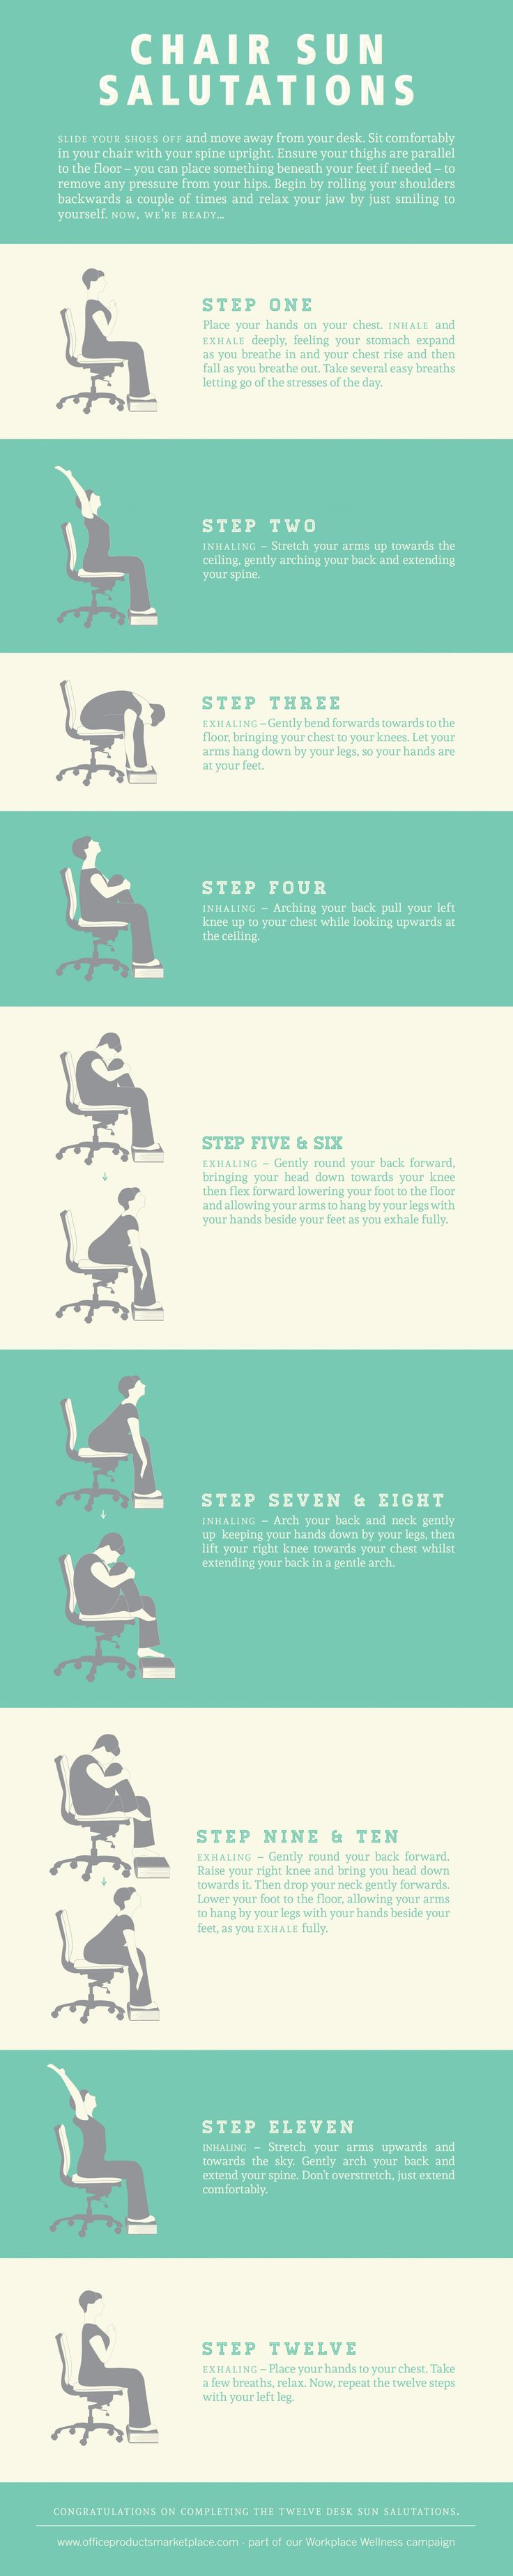 Sun Salutations at Your Desk Infographic